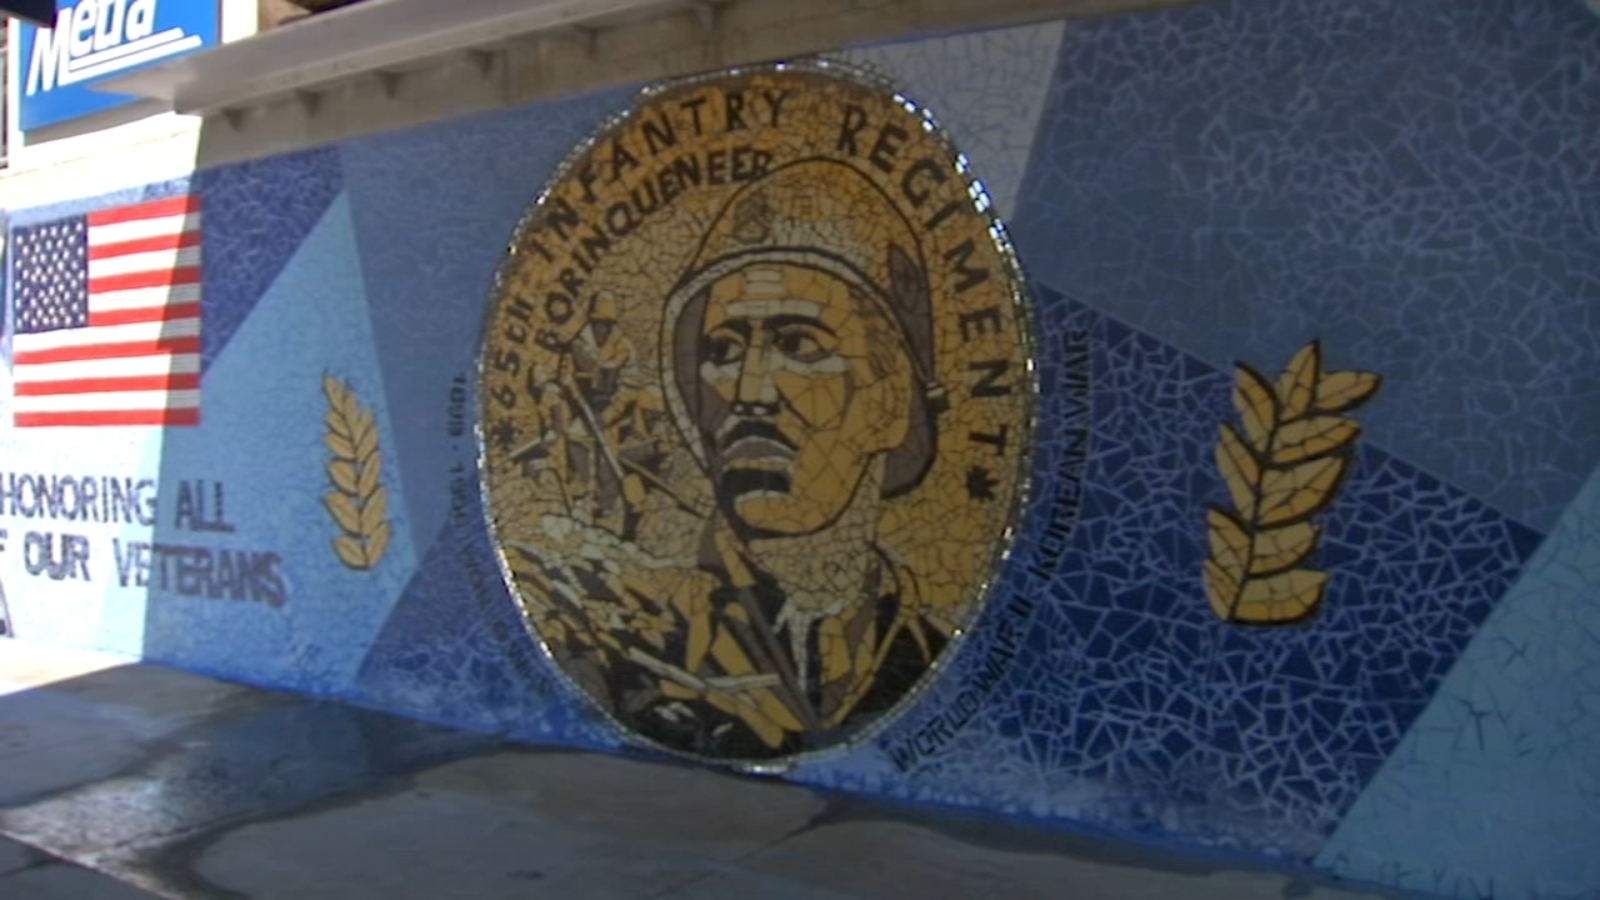 New mural to honor Borinqueneers in Hermosa on NW Side